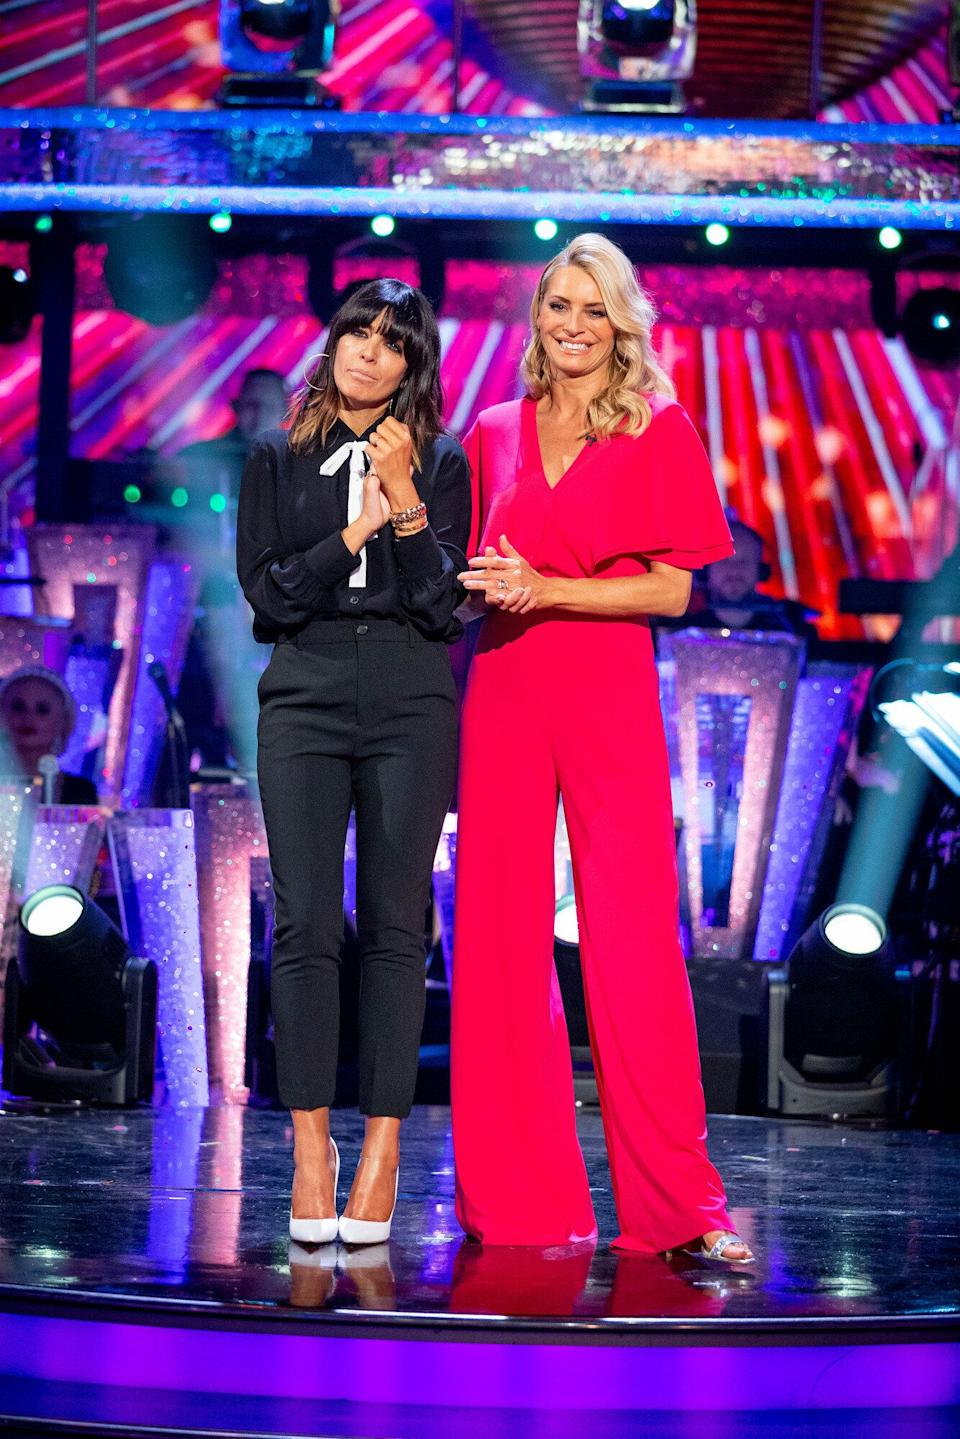 Tess with Strictly Come Dancing co-host Claudia Winkleman (Photo: BBC)